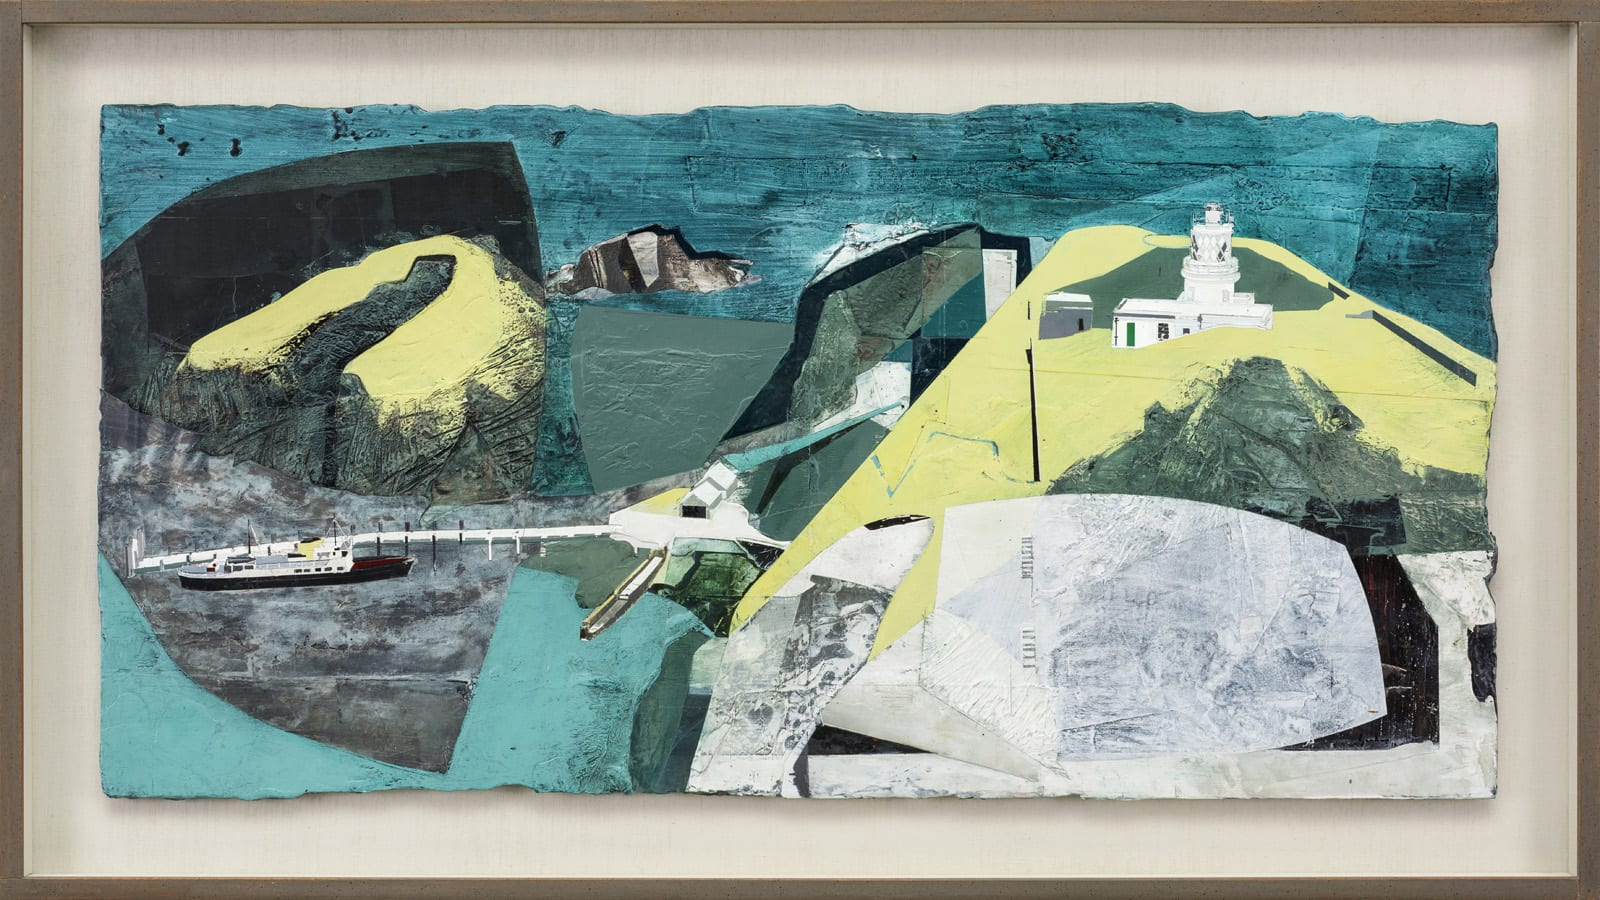 Jeremy Gardiner, Turquoise Harbour, Lundy South Lighthouse, 2016